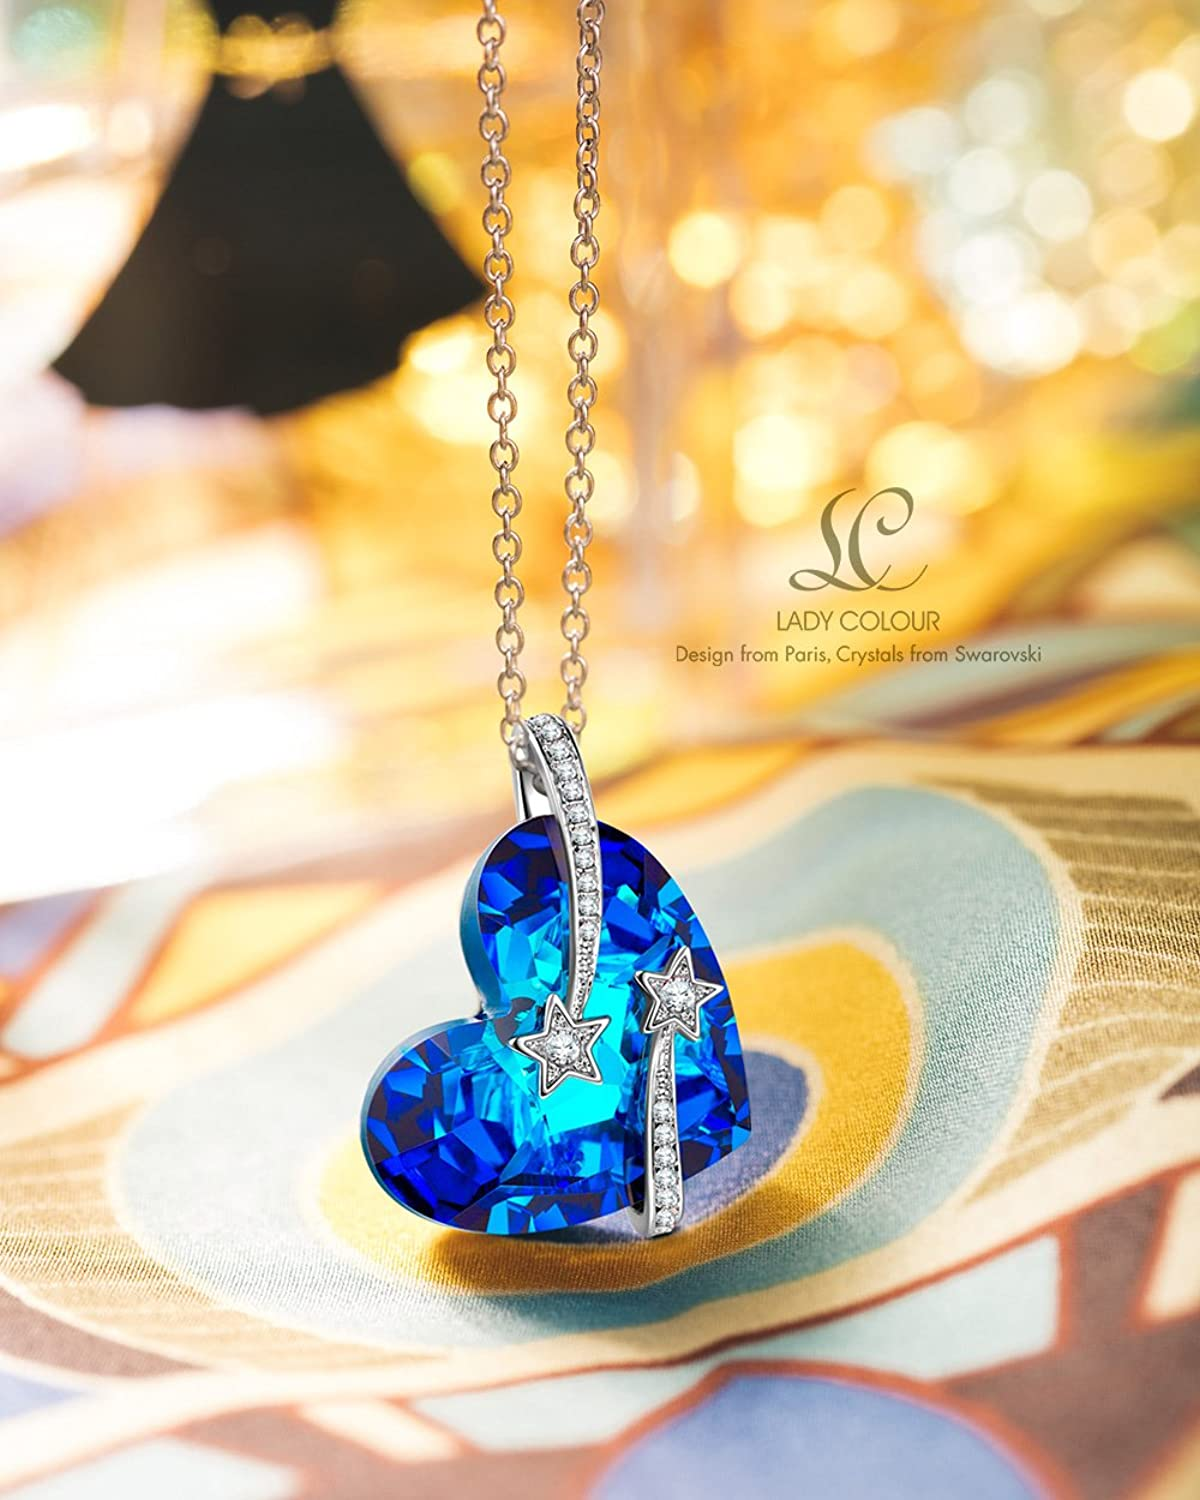 LADY COLOUR love you to the moon and back Pendant Necklace for Women with Blue Heart Crystals from SWAROVSKI® m2bzqo